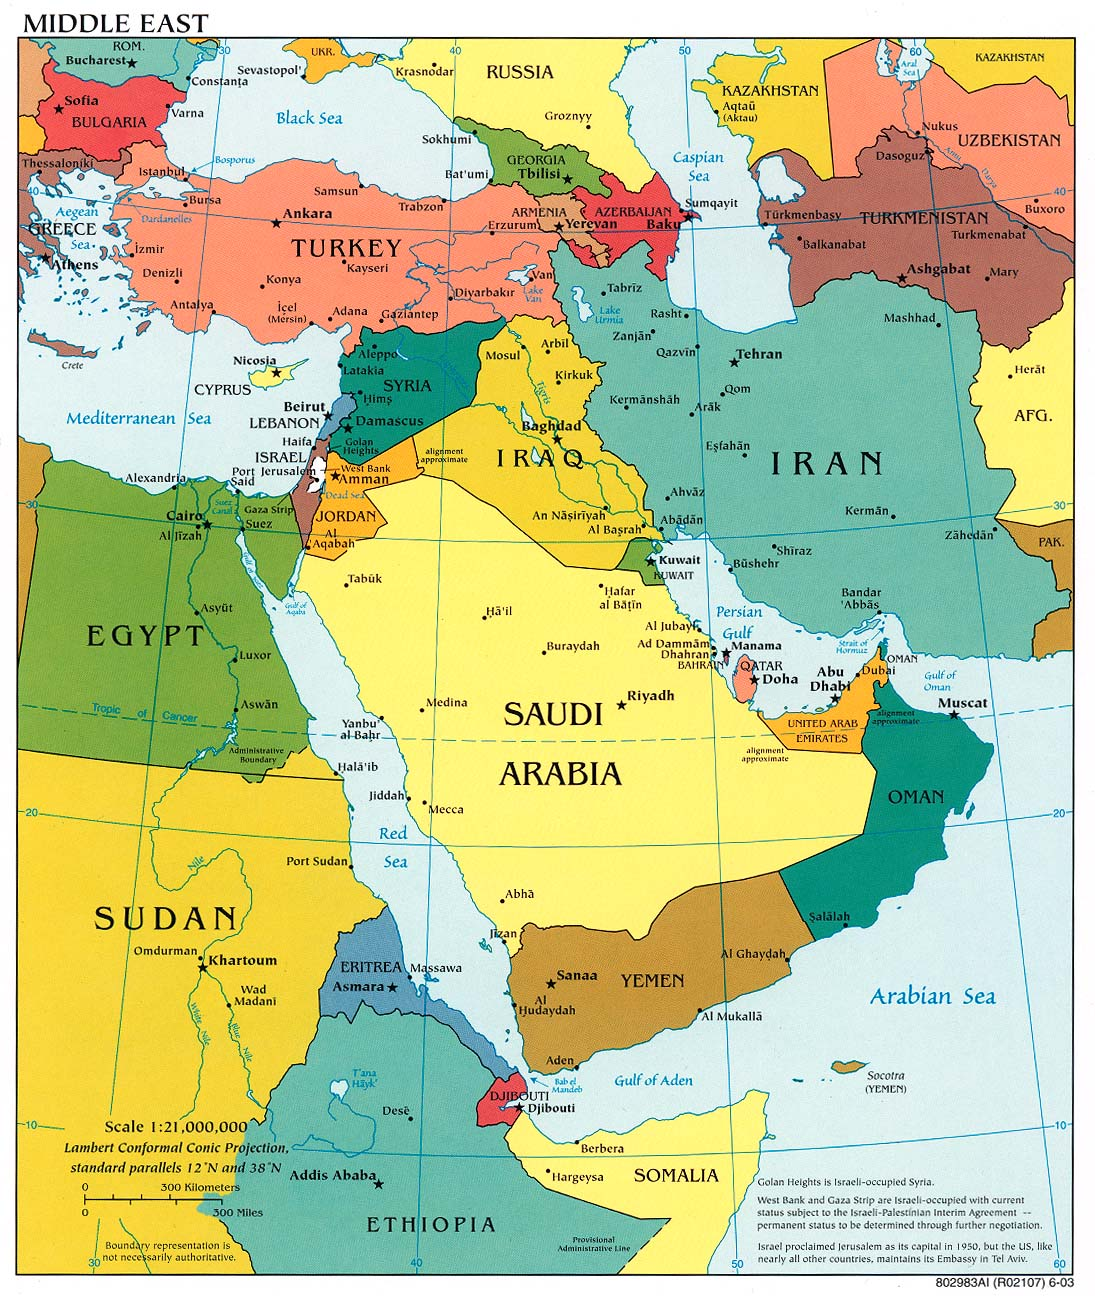 Middle East Political Map 2003